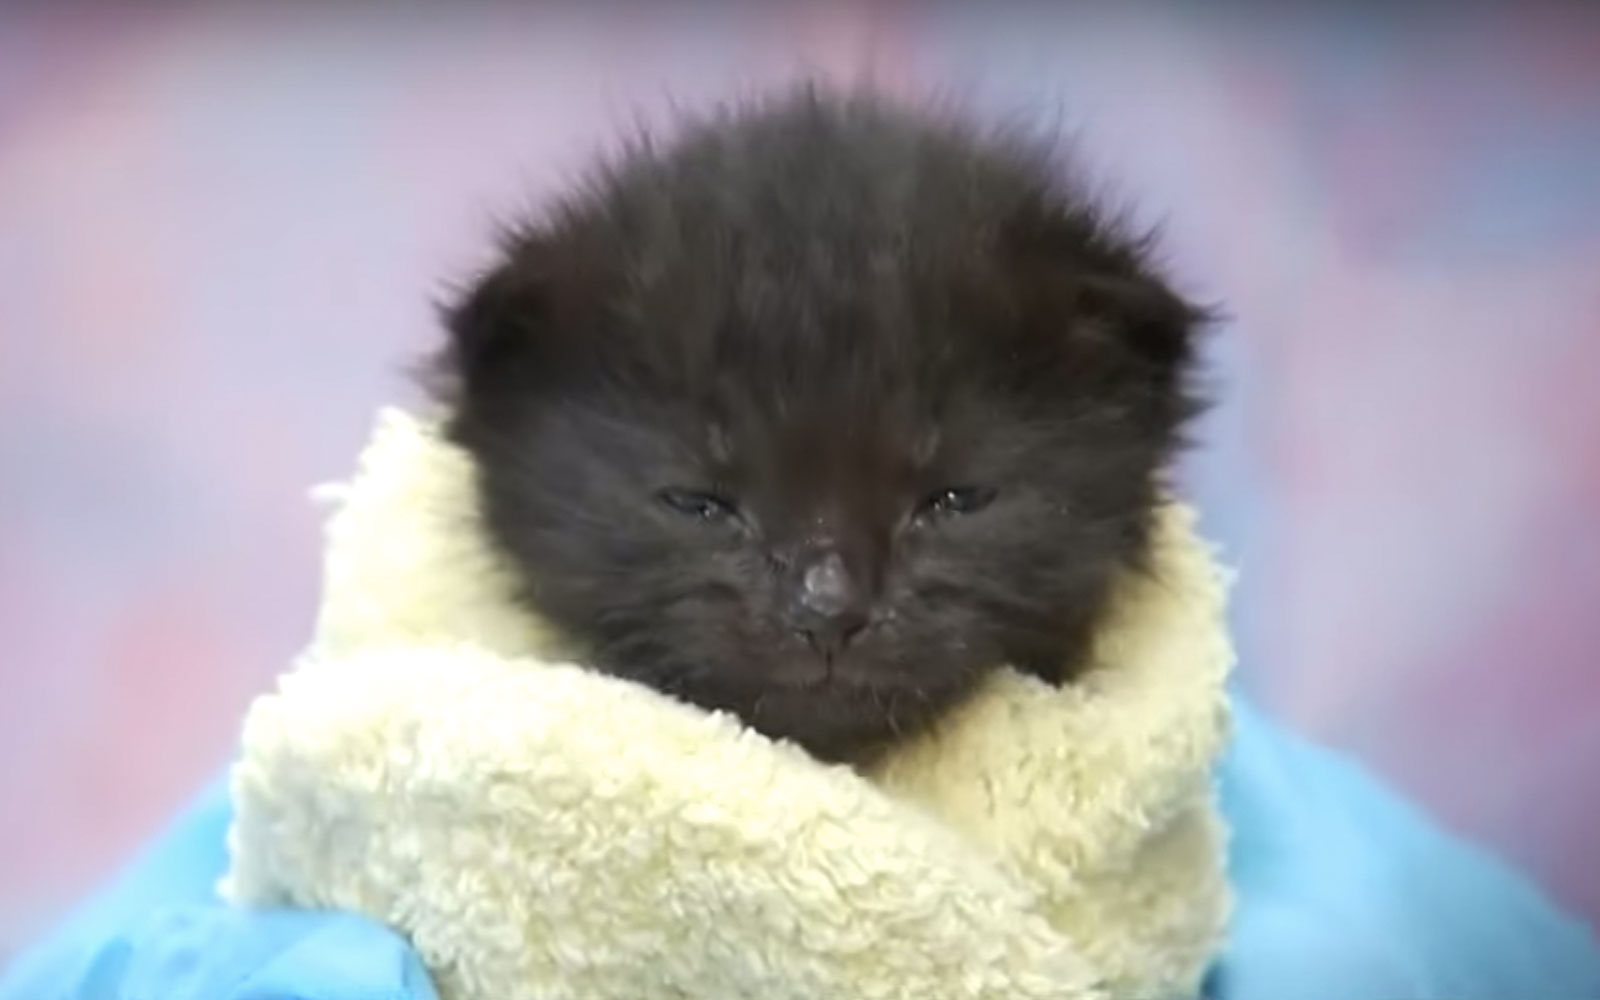 This Animal Shelter in Vegas Is Looking for Volunteers to Help Feed, Clean, and Cuddle Tiny Kittens